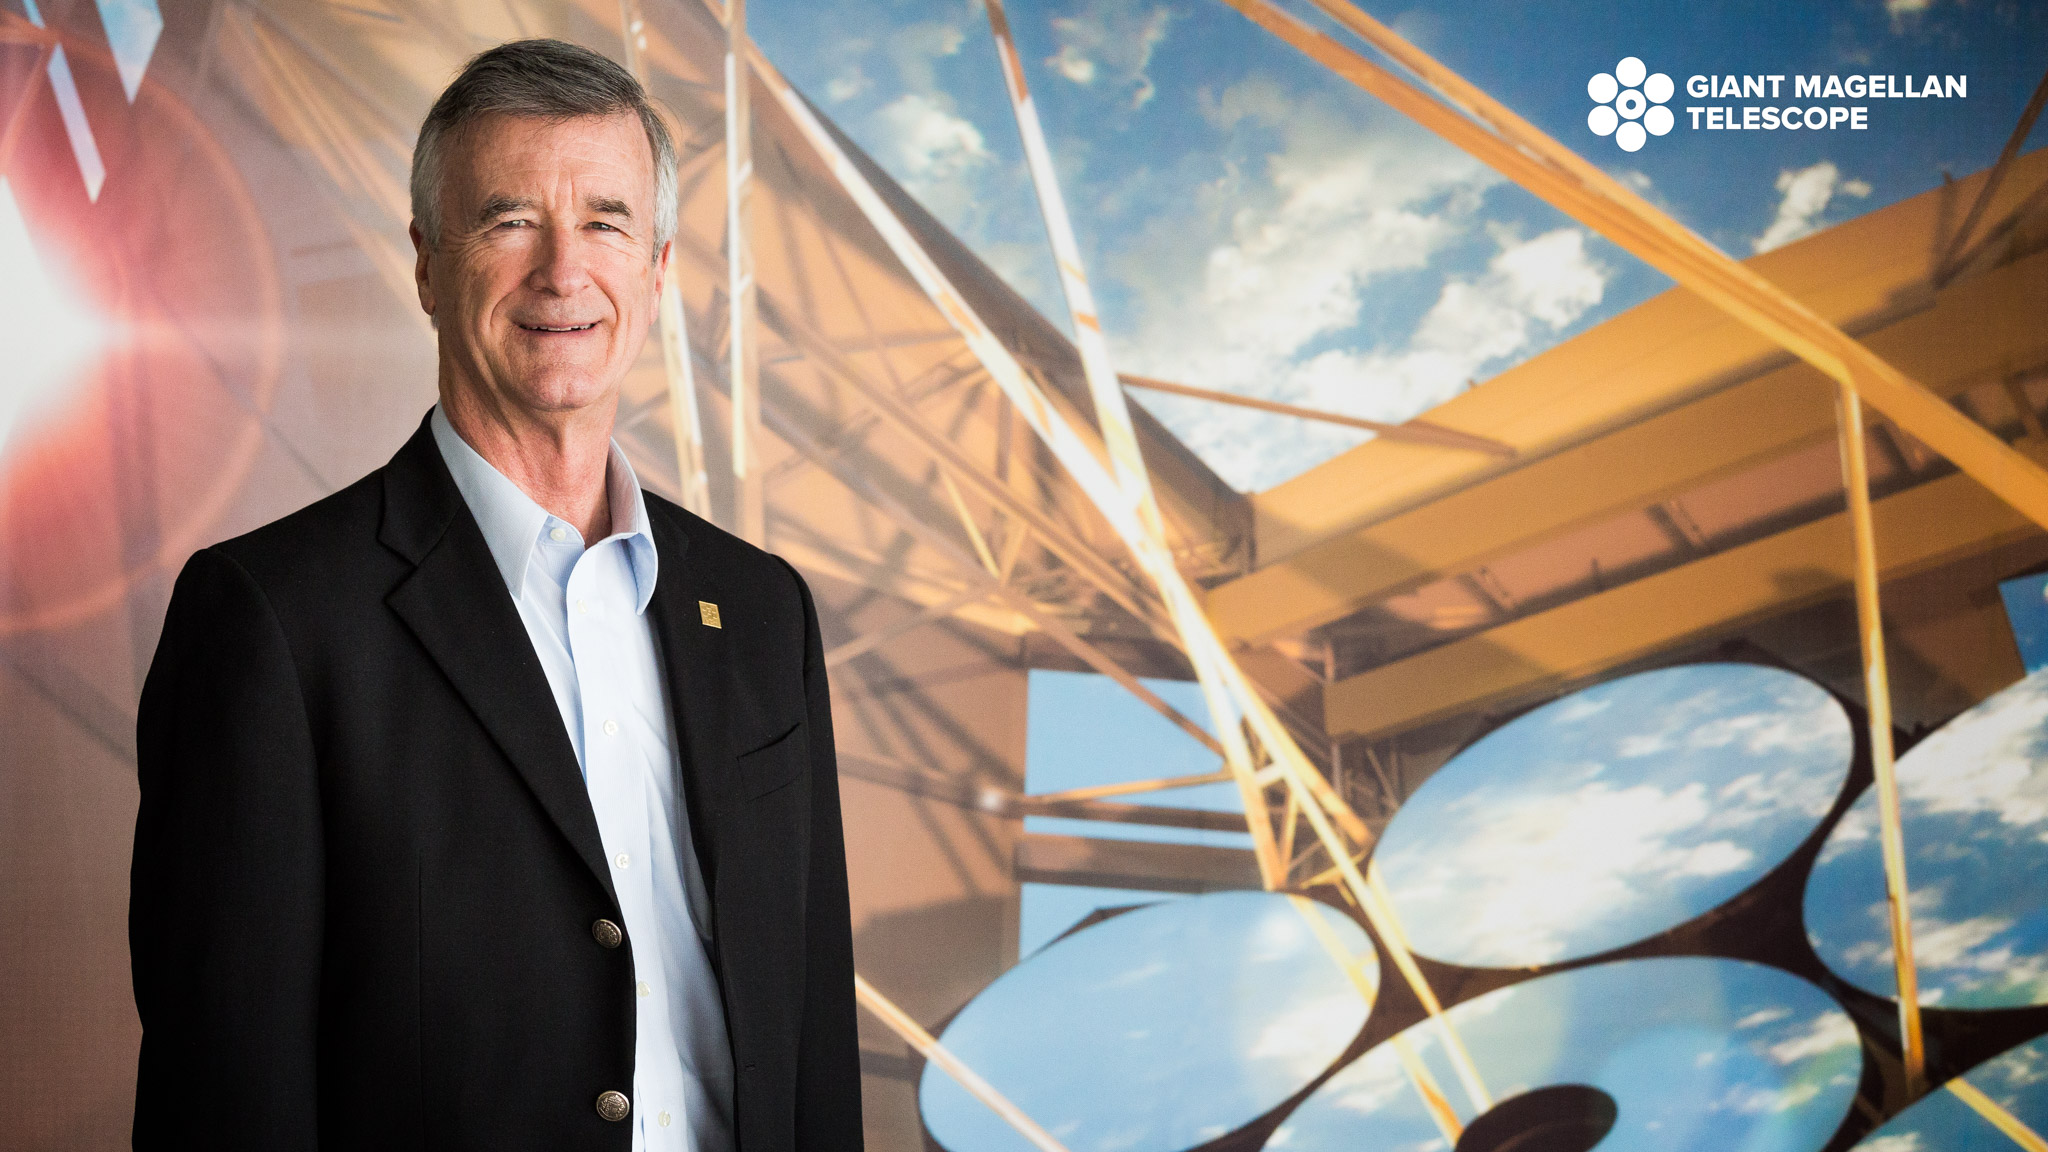 Robert Shelton, who served as the UA's 19th president from 2006 until 2011, will lead the Giant Magellan Telescope Organization behind the development of the world's largest telescope.